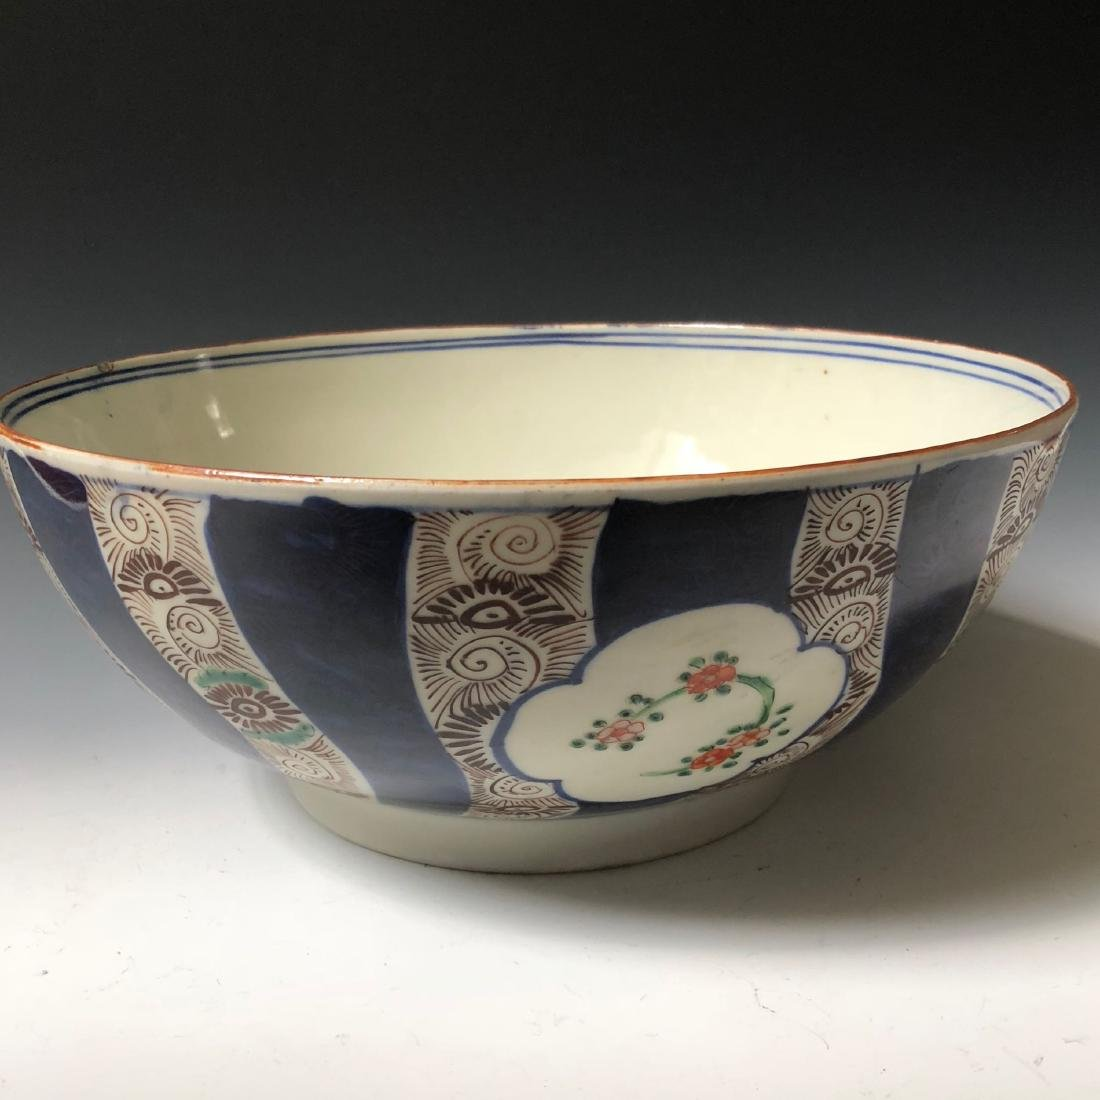 A JAPANESE PORCELAIN BOWL.